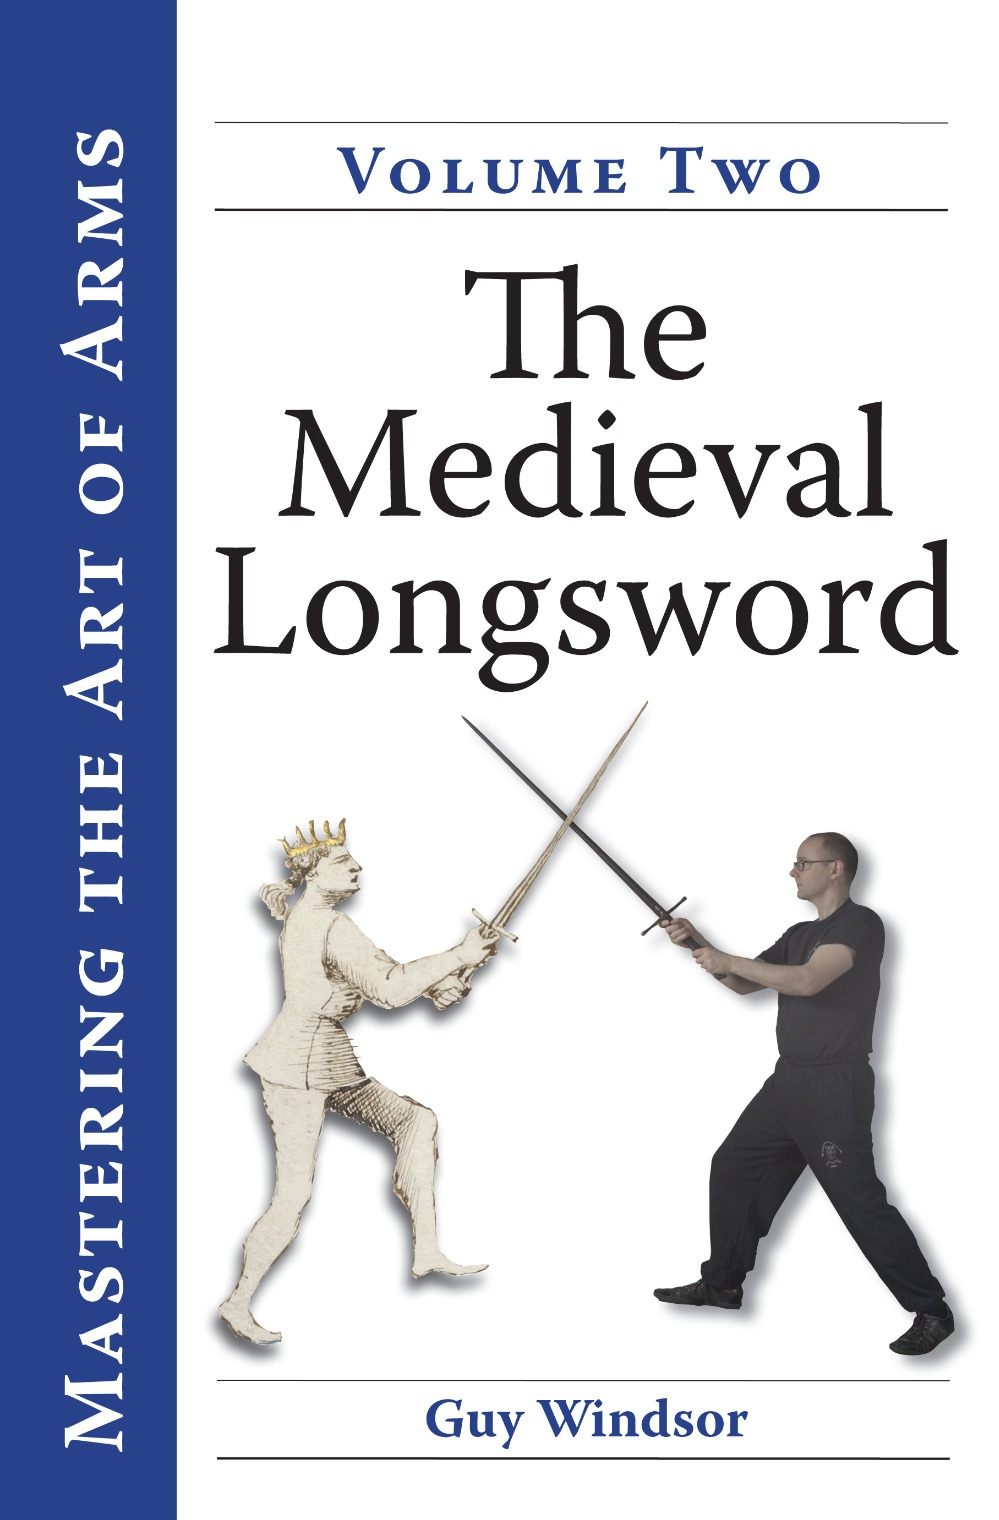 The Medieval Longsword, ebook.